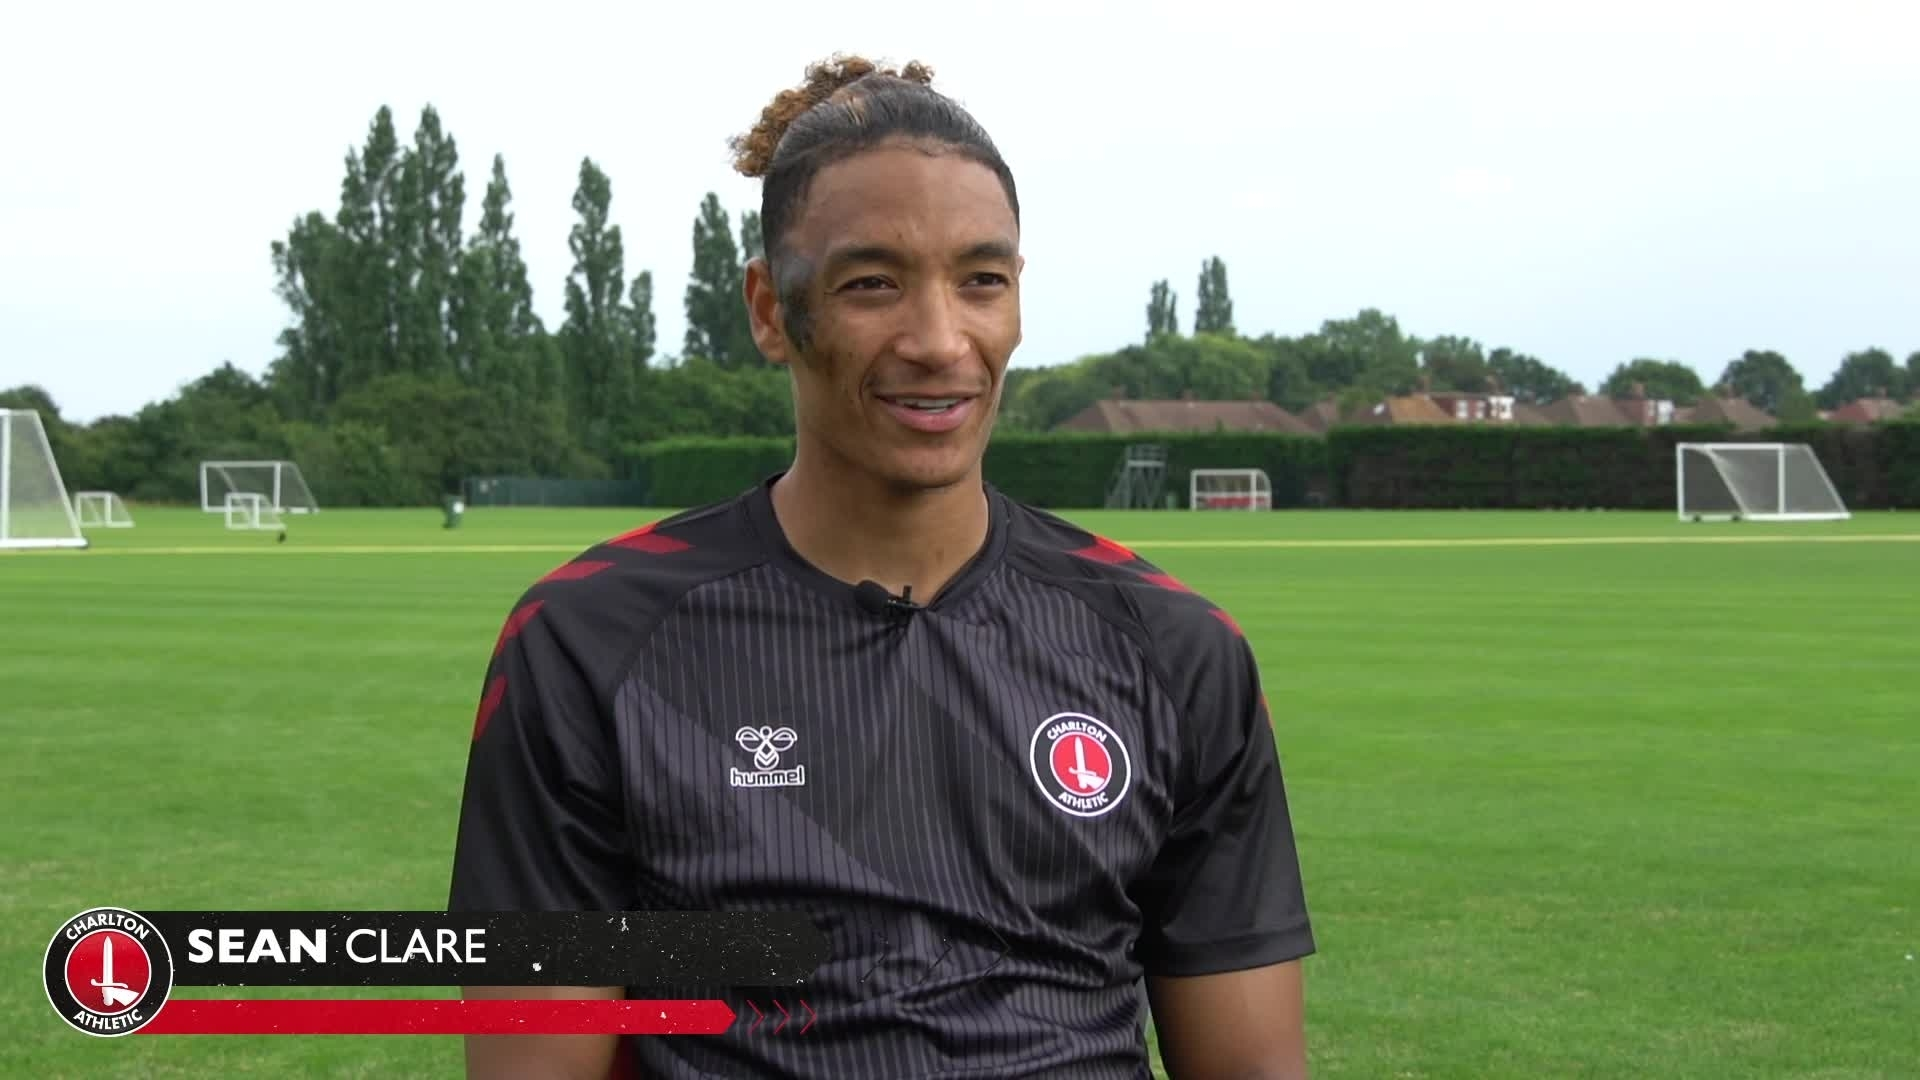 Sean Clare's first Charlton interview (July 2021)